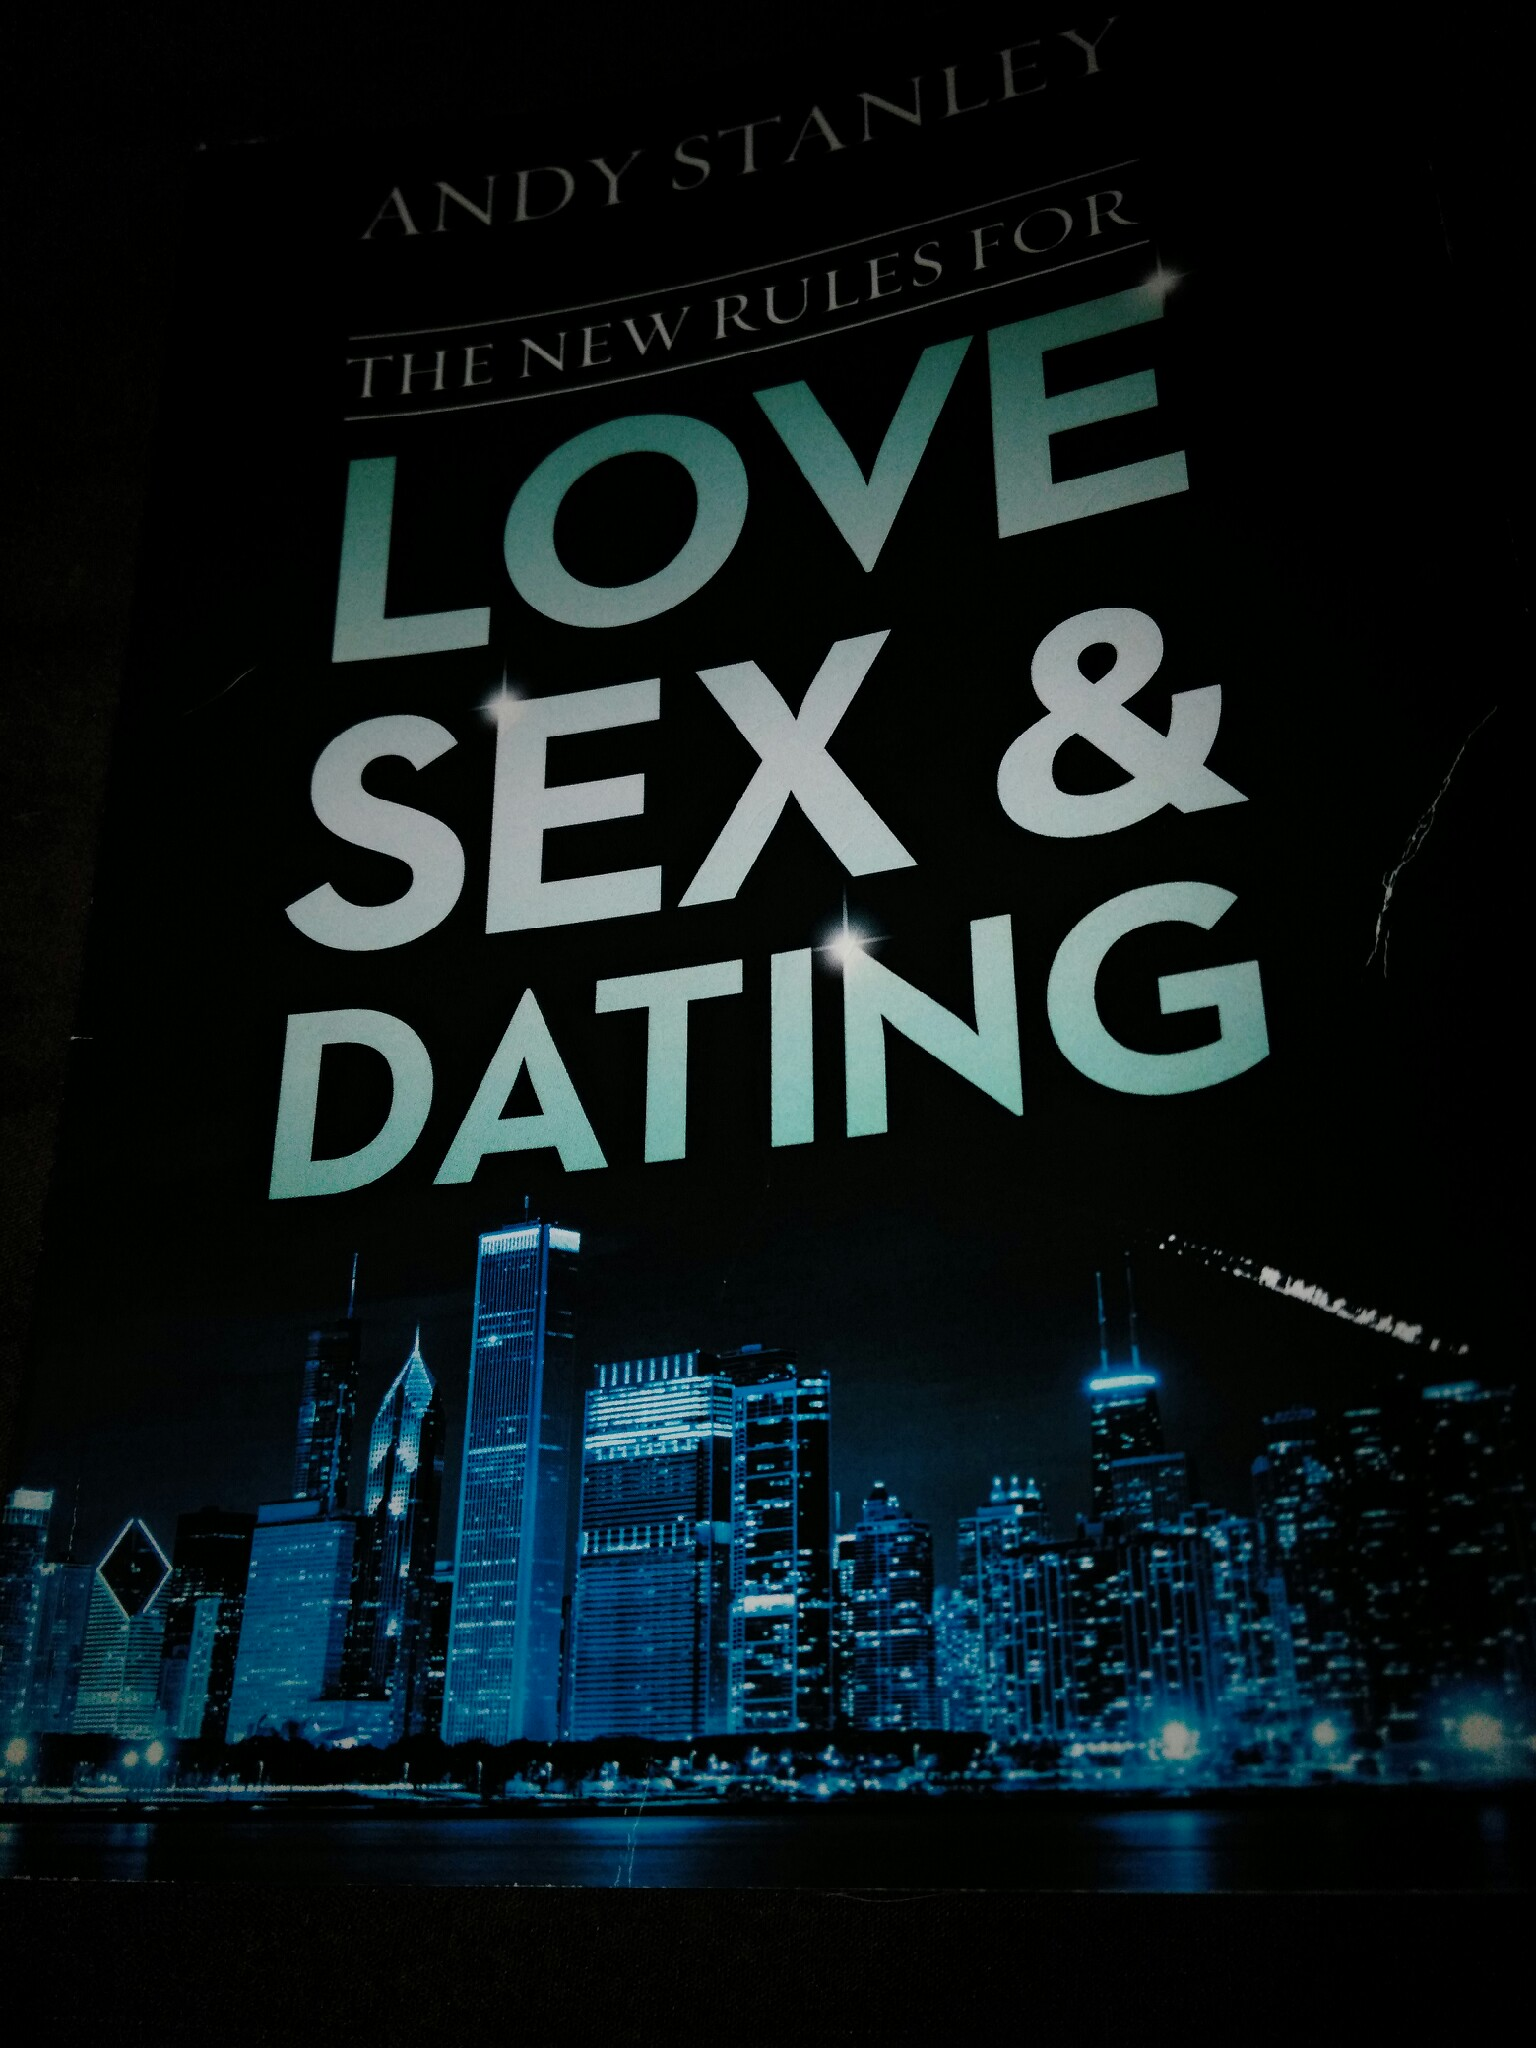 The New Rules for Love Sex & Dating DVD